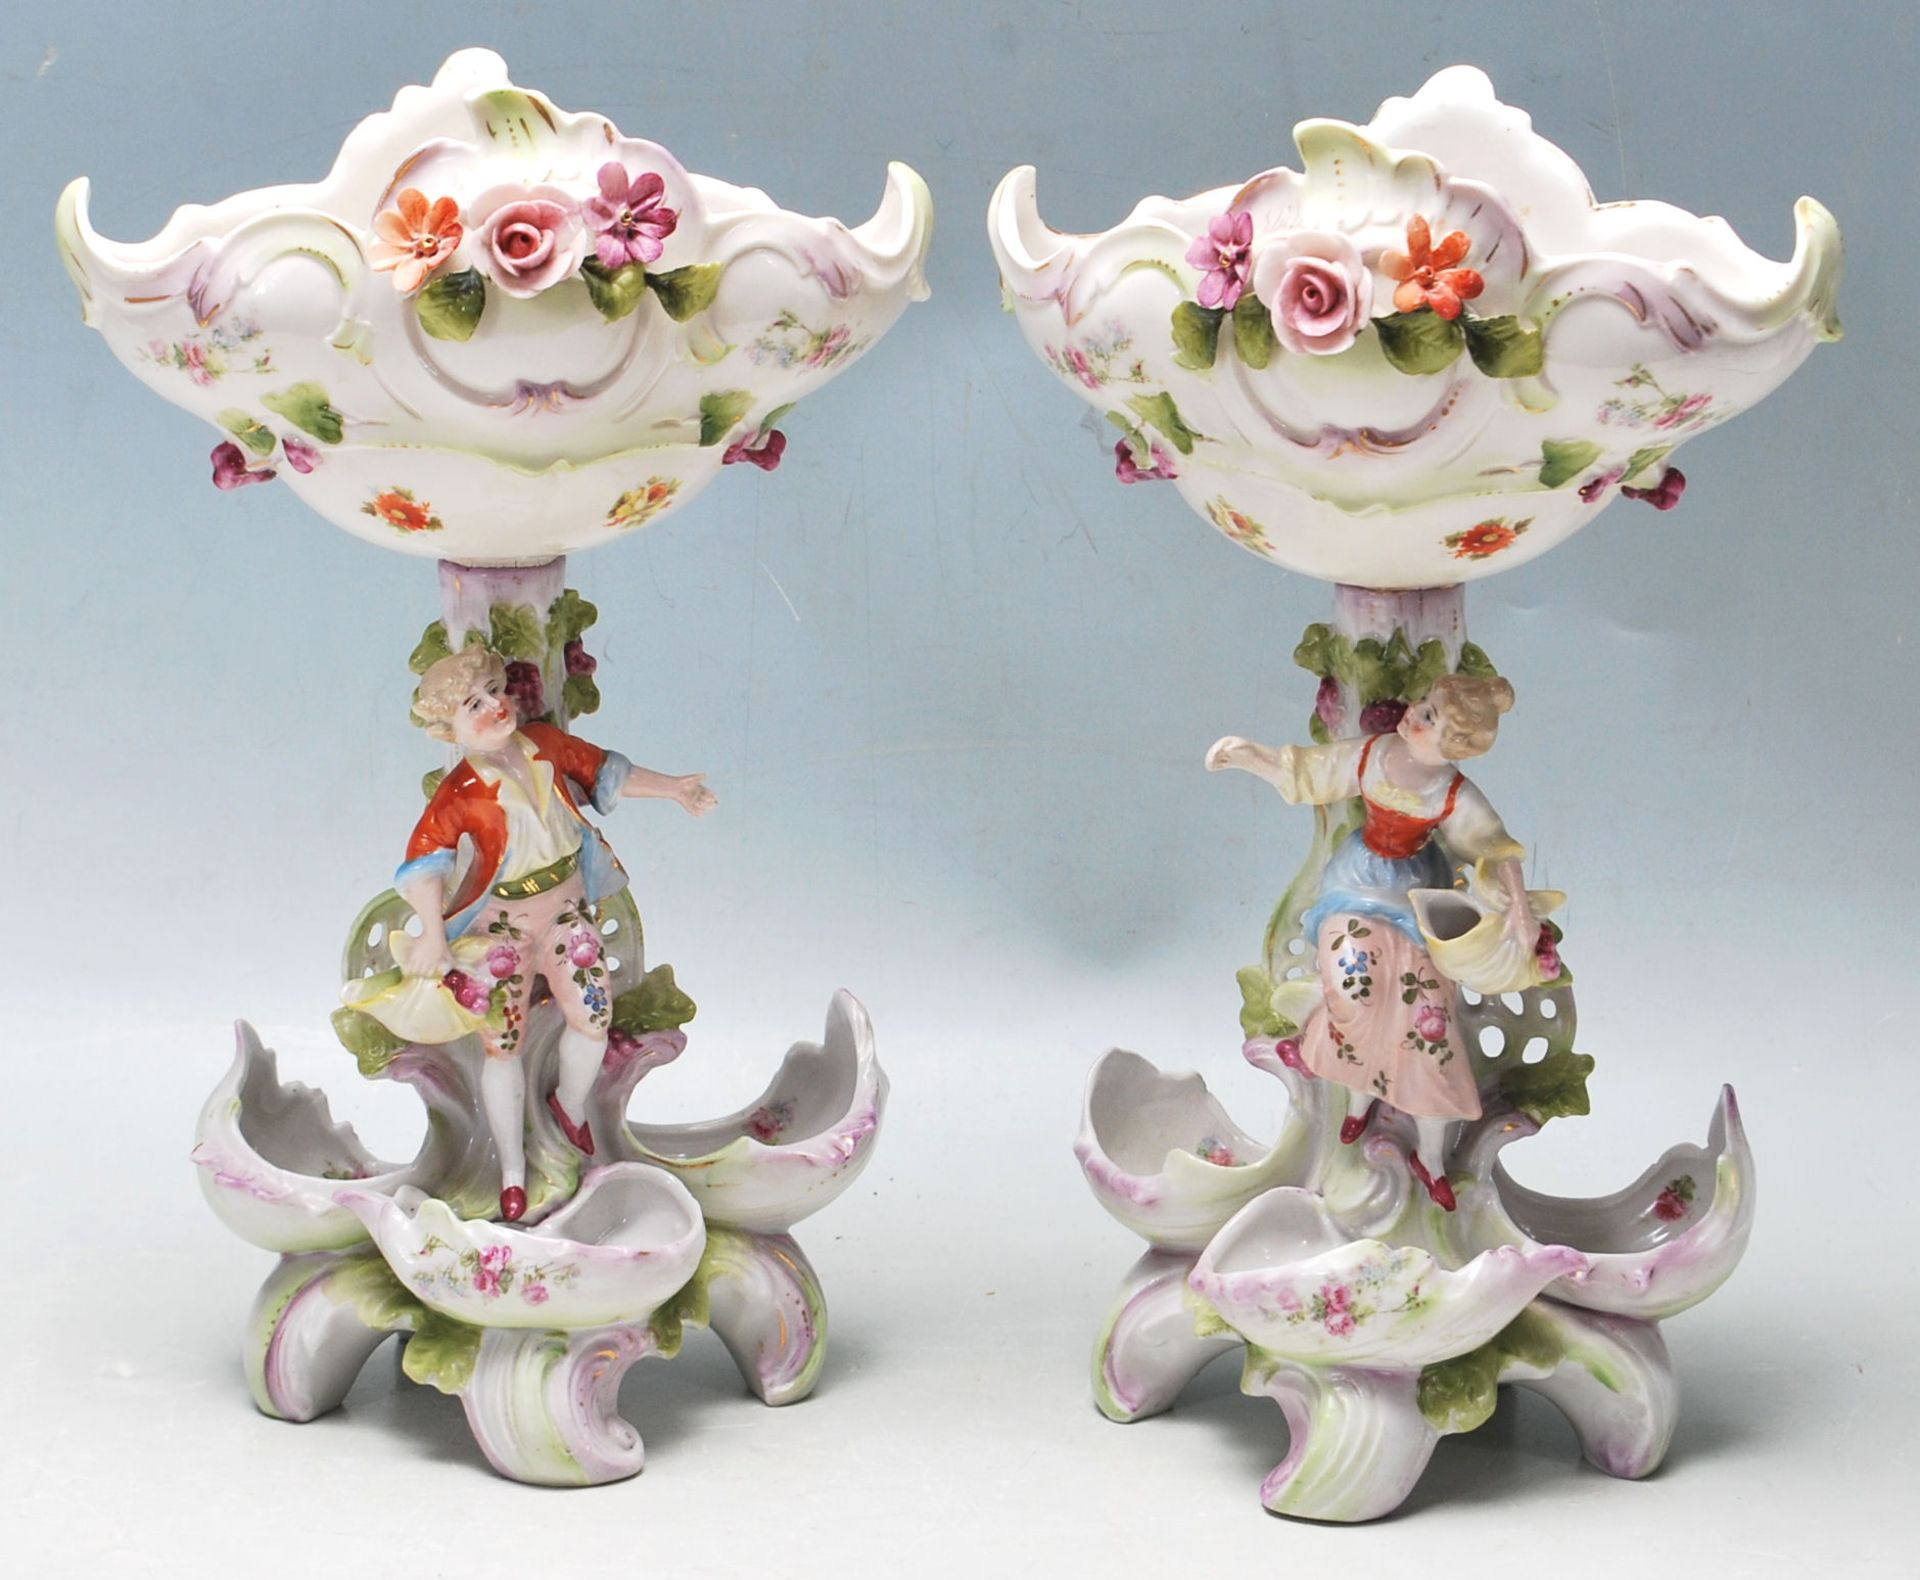 19TH CENTURY VICTORIAN GERMAN PORCELAIN CENTRE PIECES - Image 4 of 7